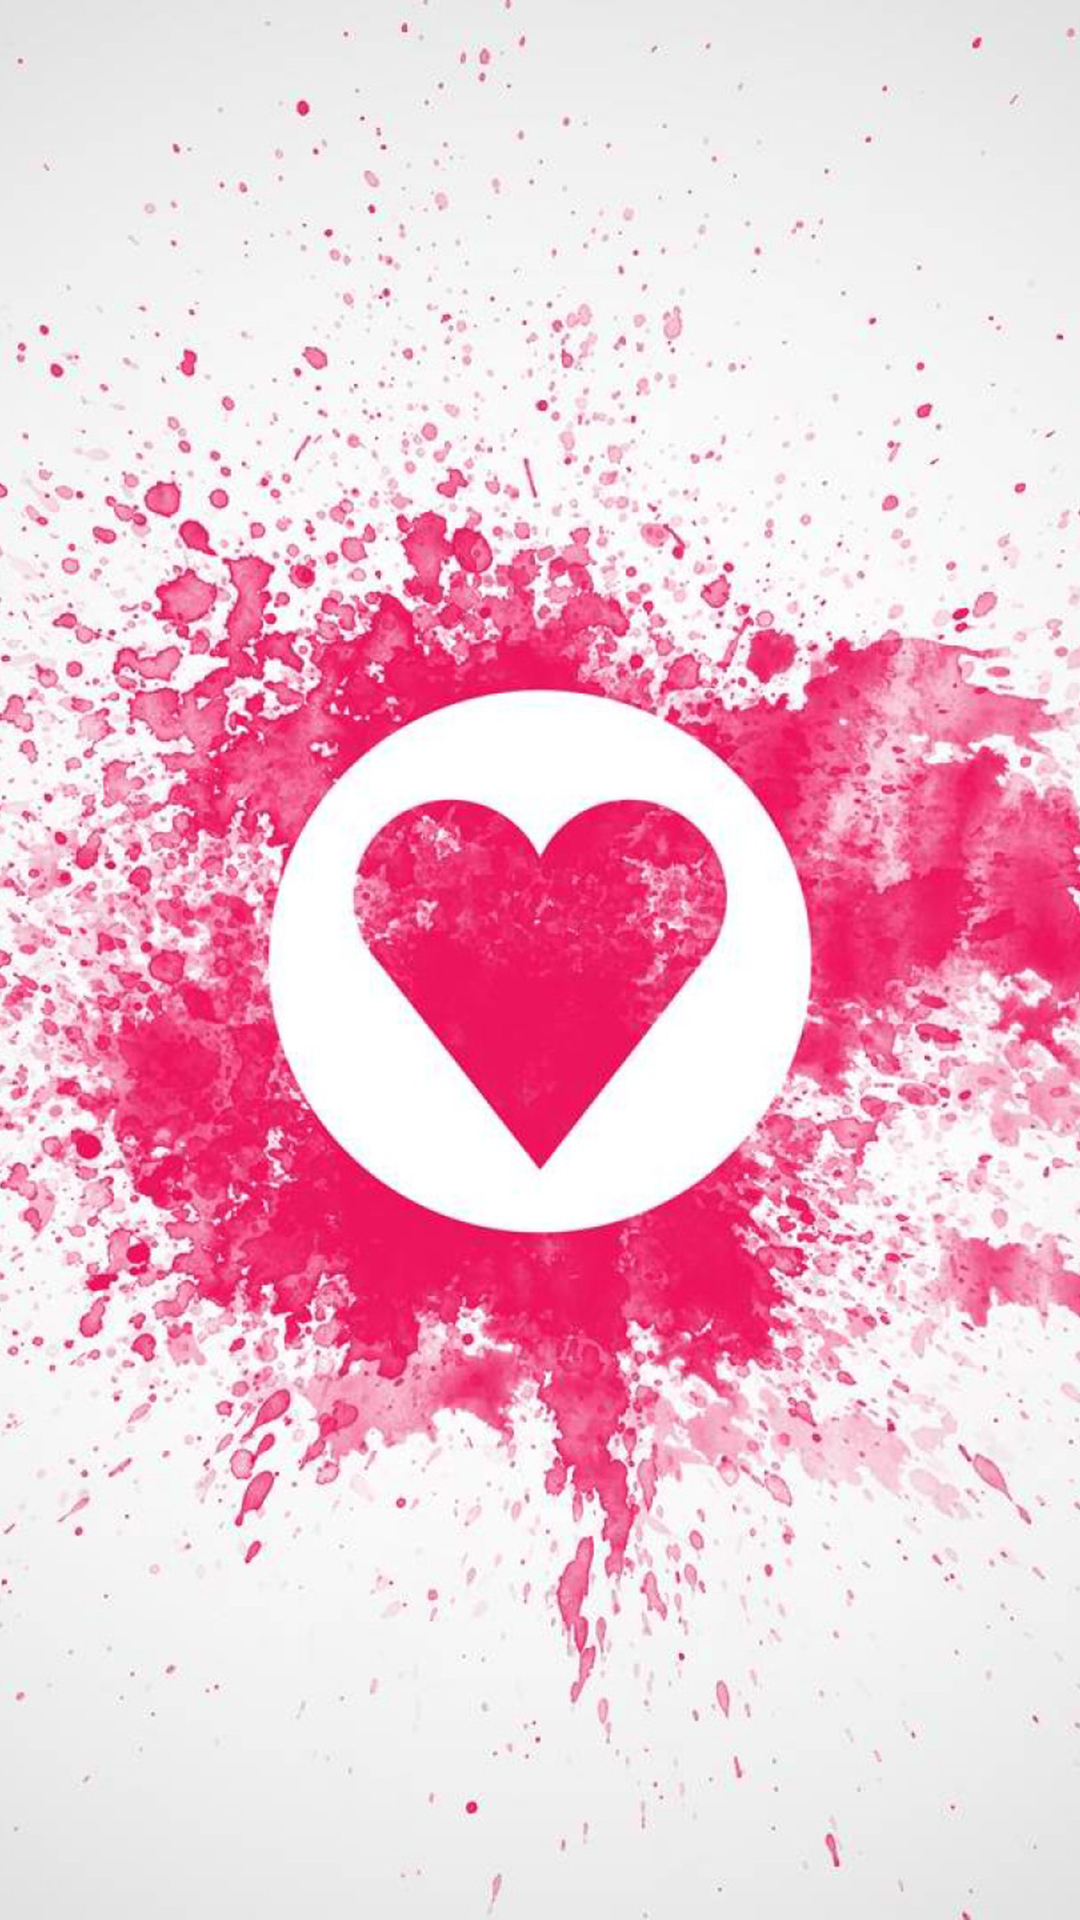 Abstract Love Heart Wallpaper